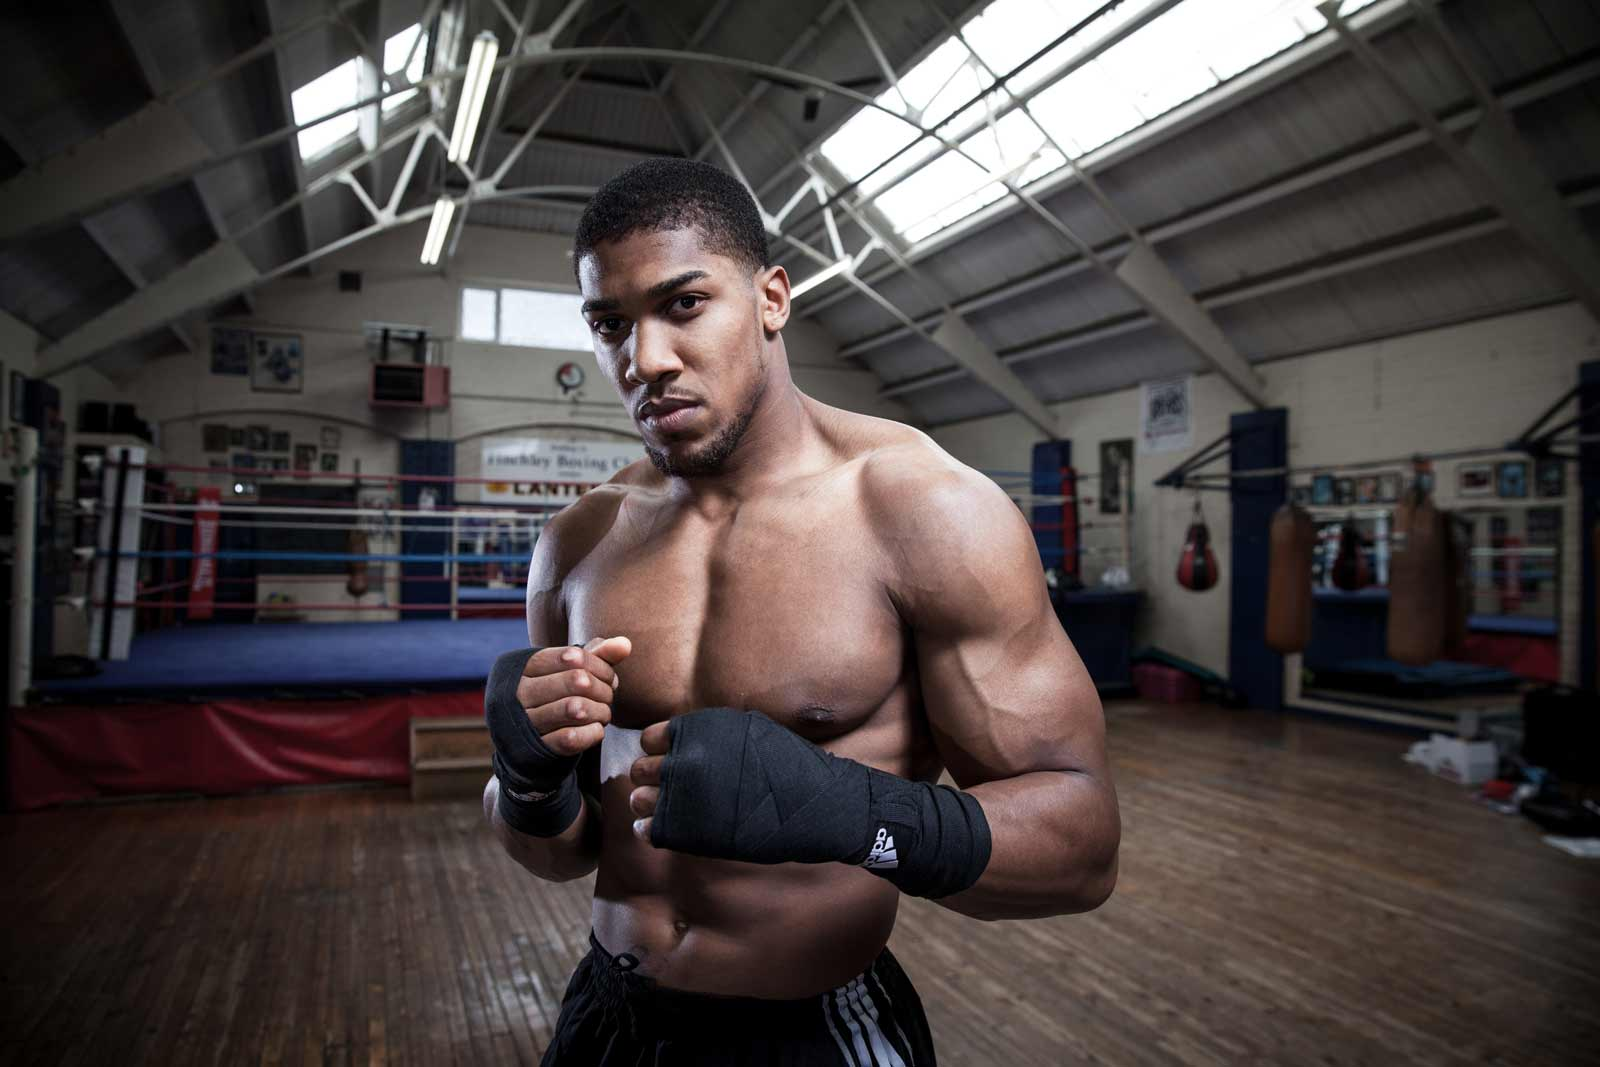 WATCH: ANTHONY JOSHUA REVEALS HIS SACRIFICES IN PREPARATION FOR FIGHT AGAINST DILLIAN WHYTE!